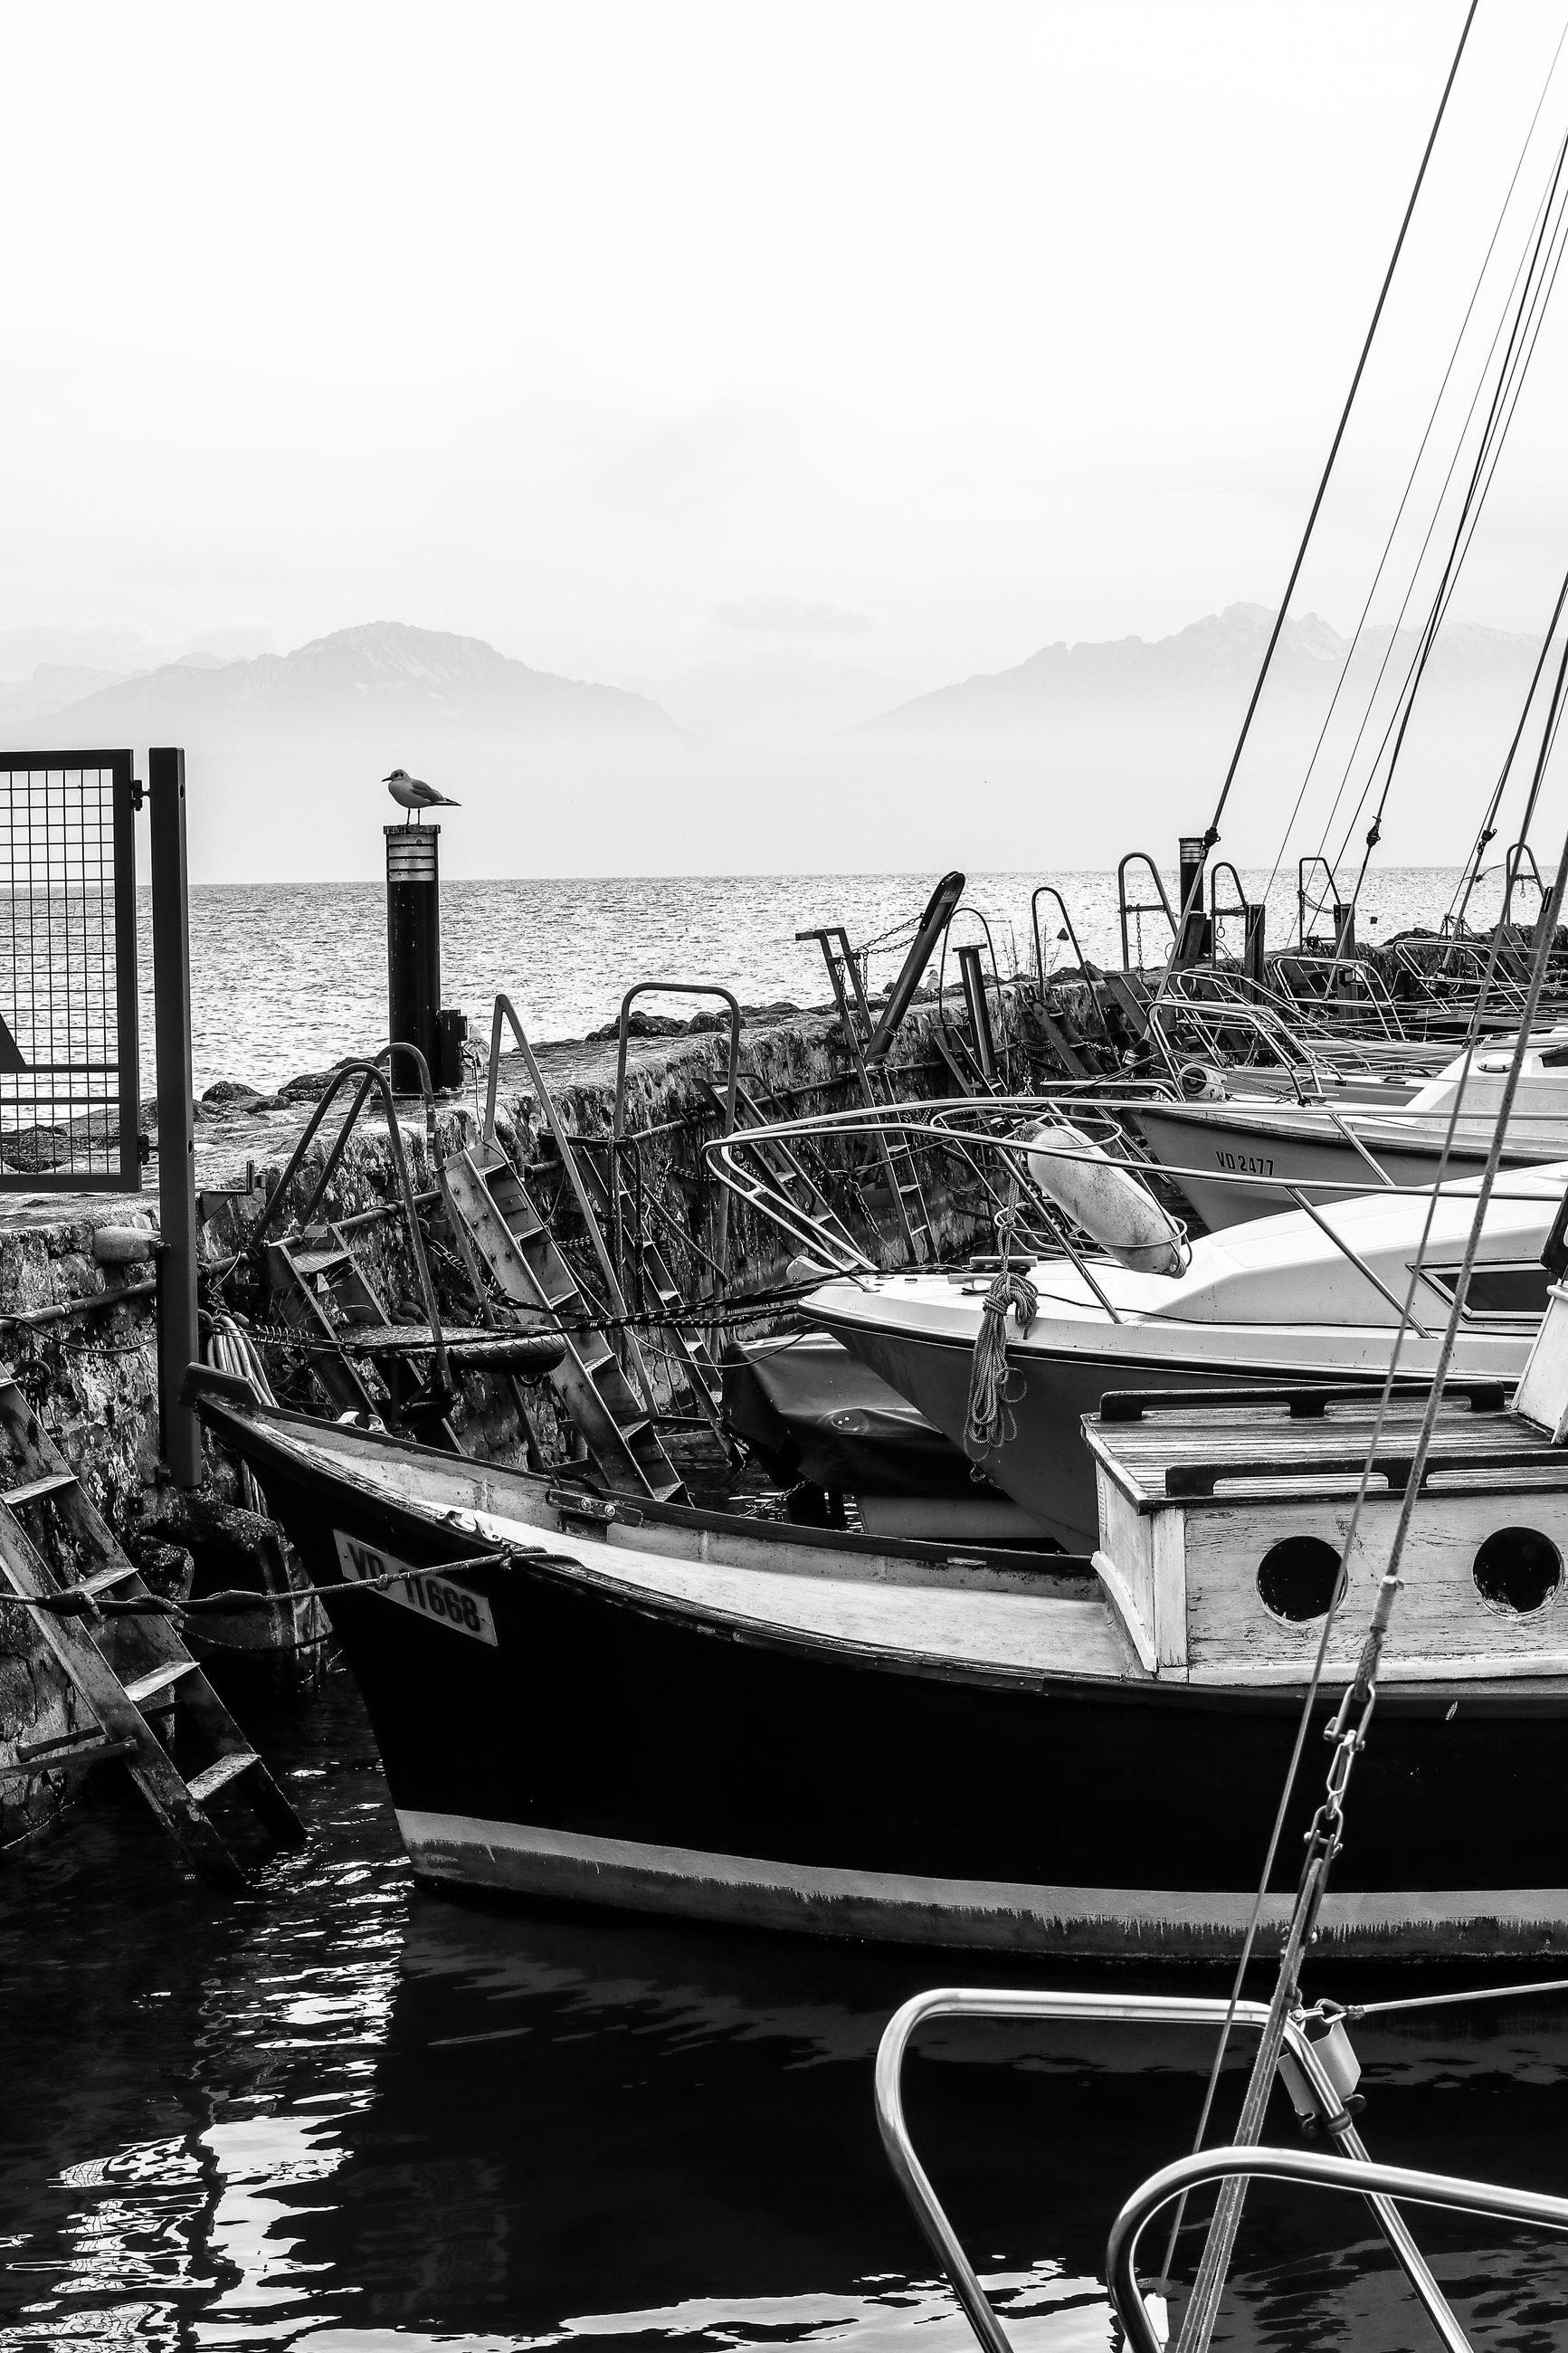 nautical vessel, water, sea, moored, transportation, mode of transport, sky, no people, nature, day, outdoors, harbor, dock